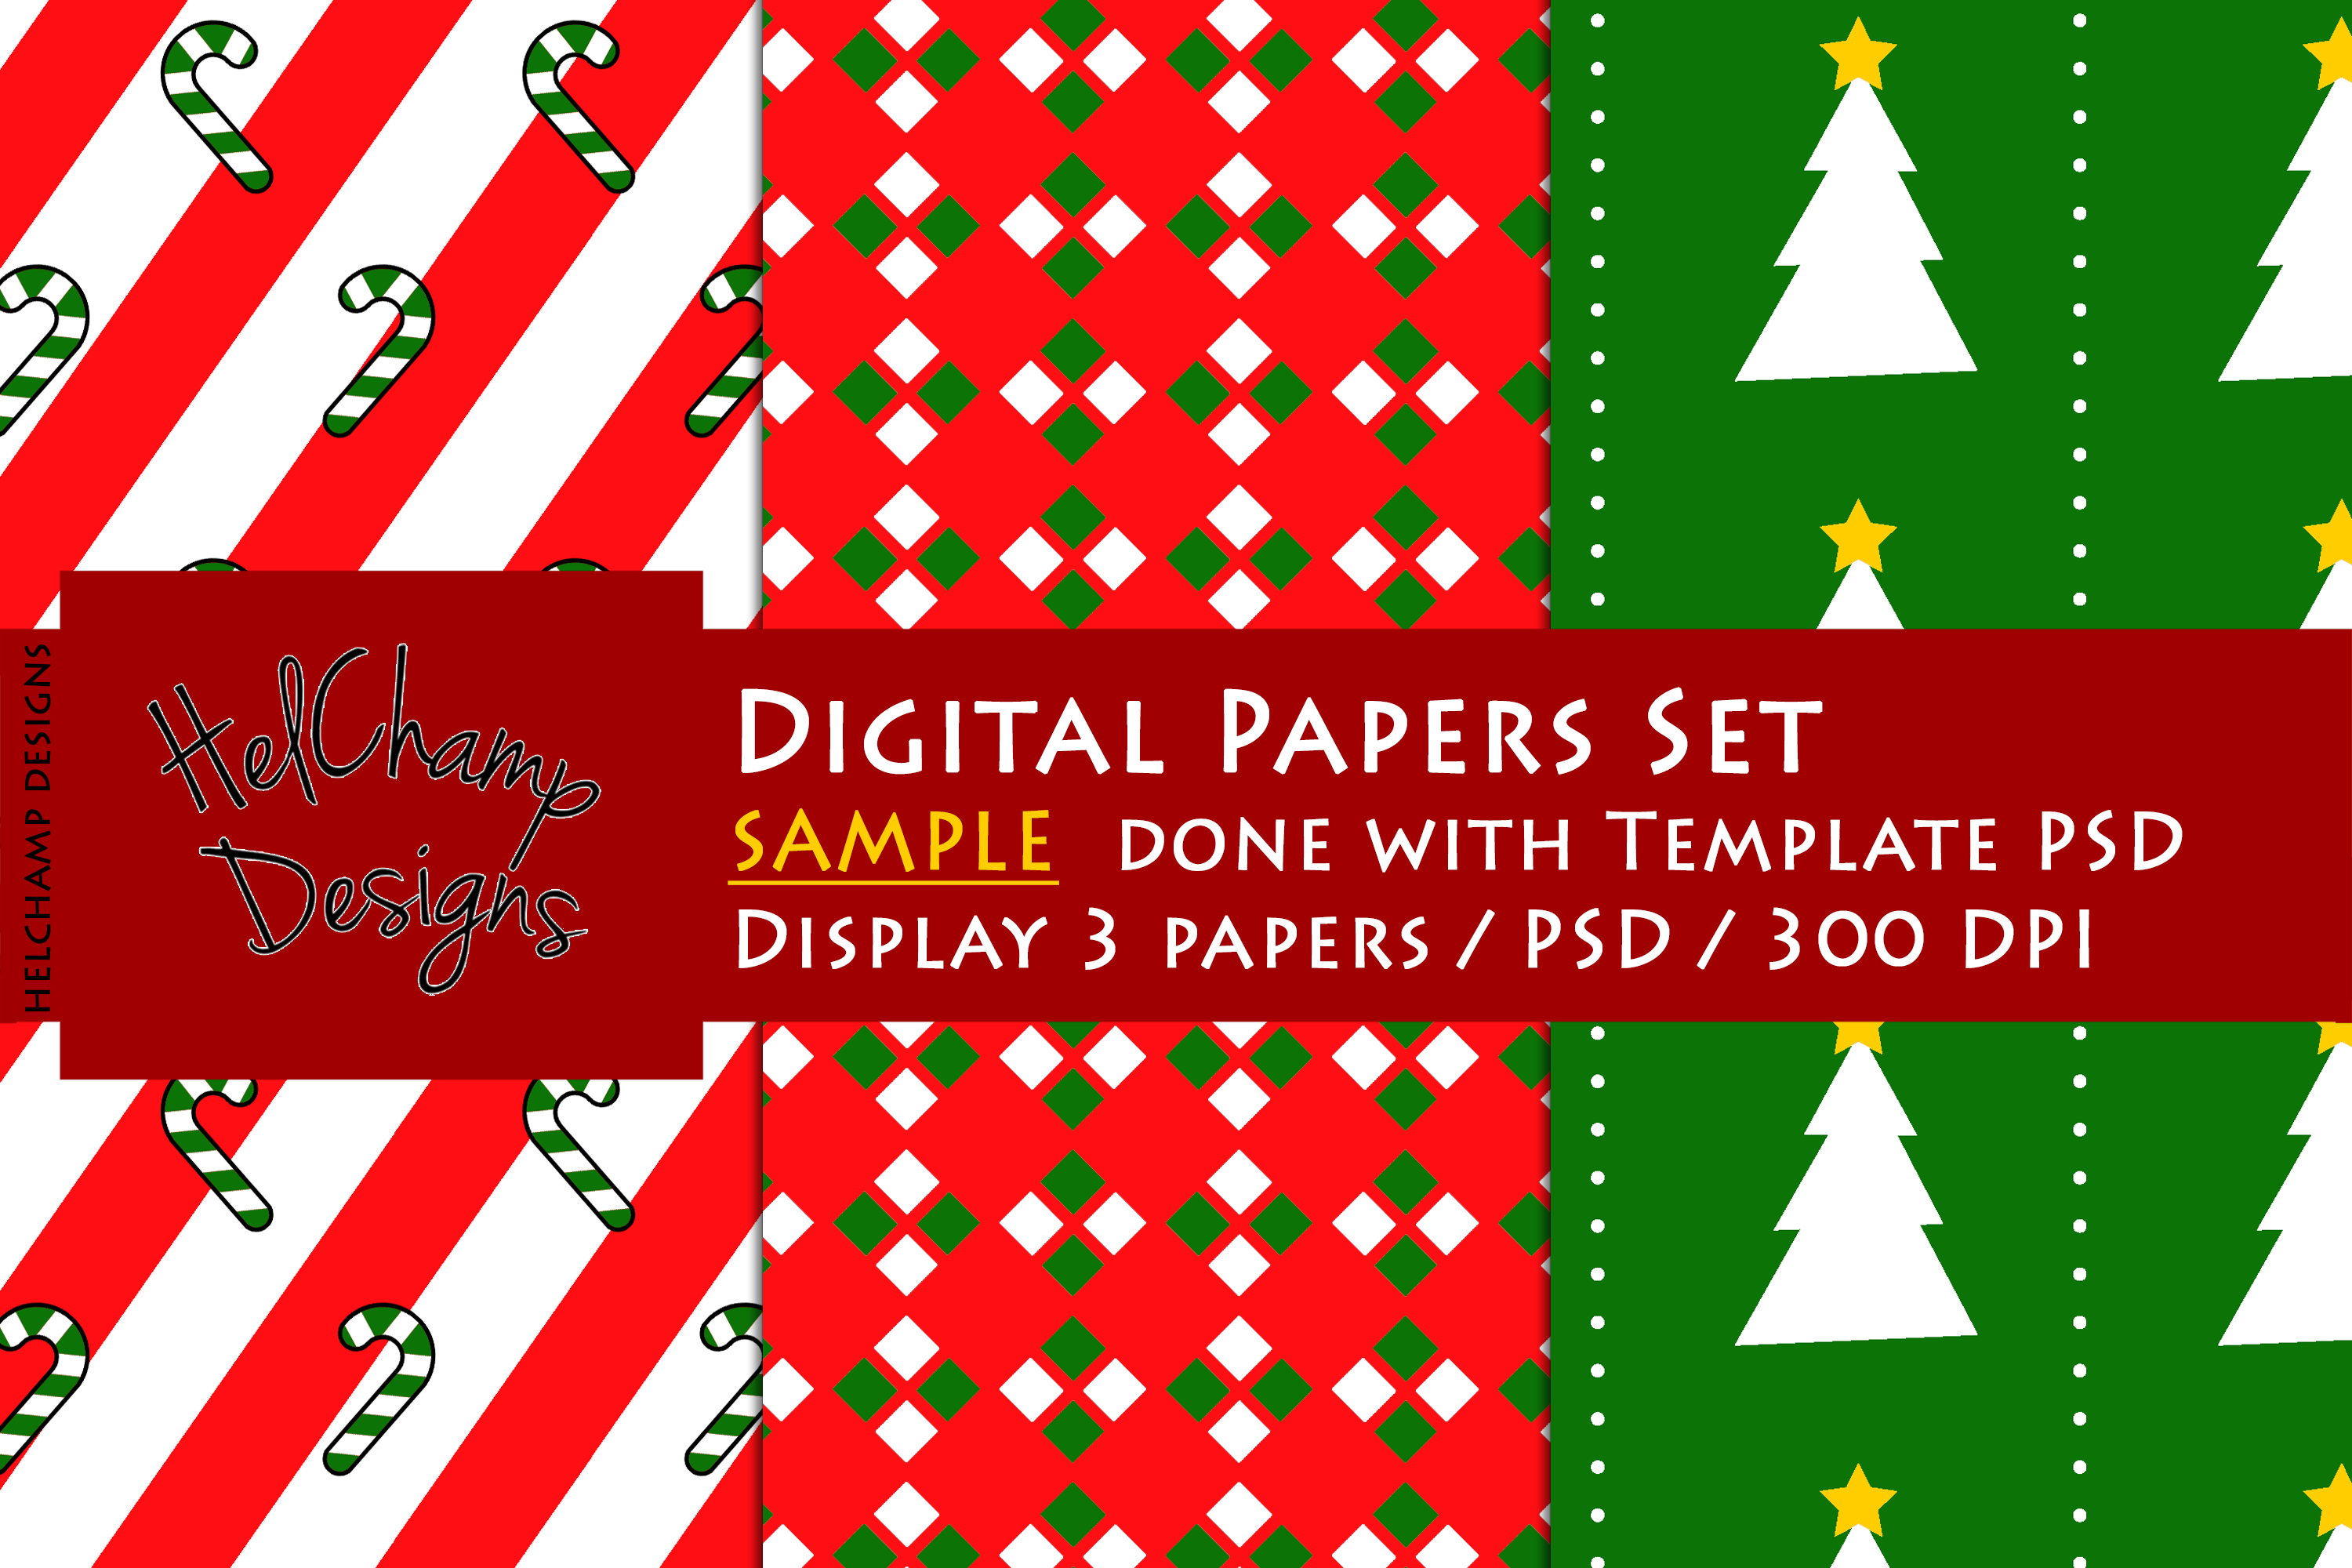 3 Panels Mockup for Digital Papers - M00 example image 5